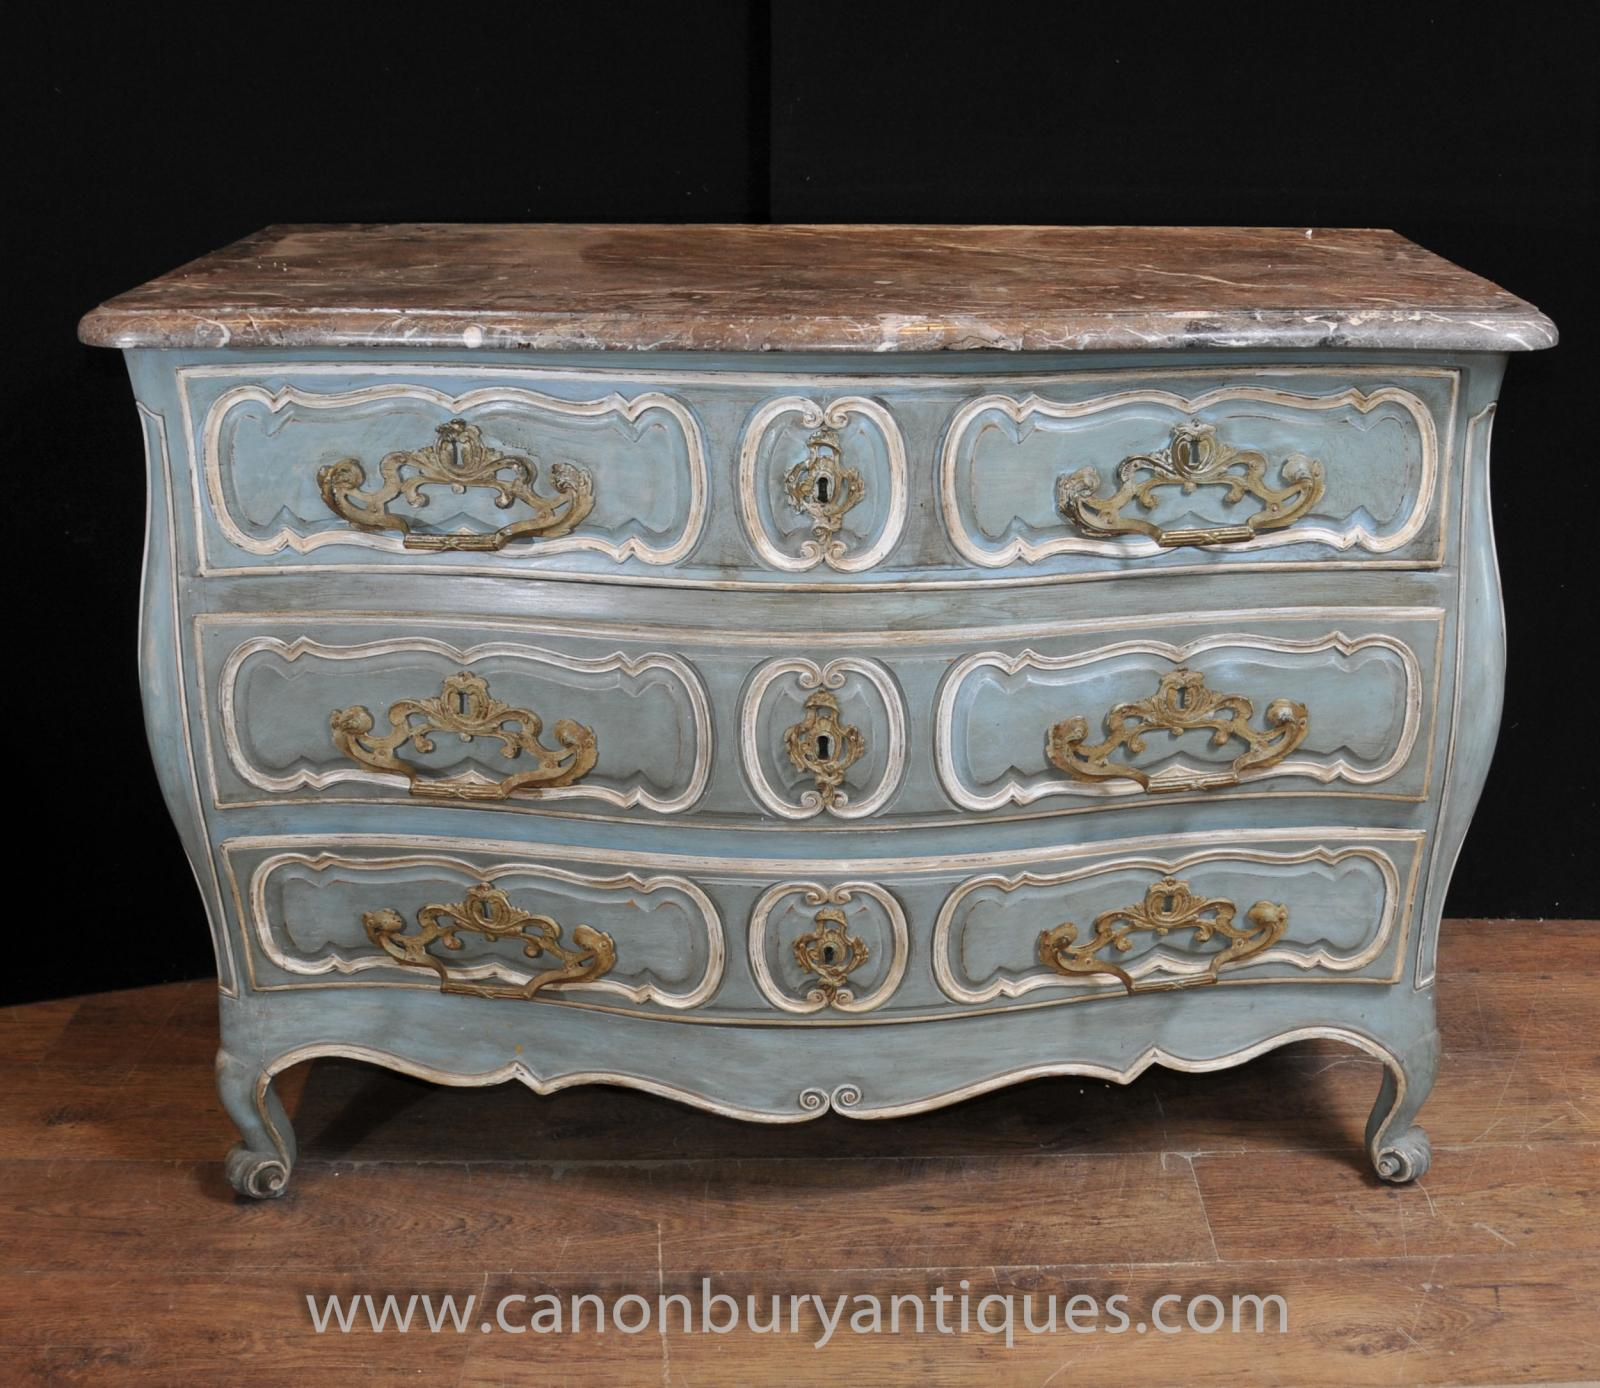 French Provincial Bombe Commode Chest Drawers Antique Furniture EBay